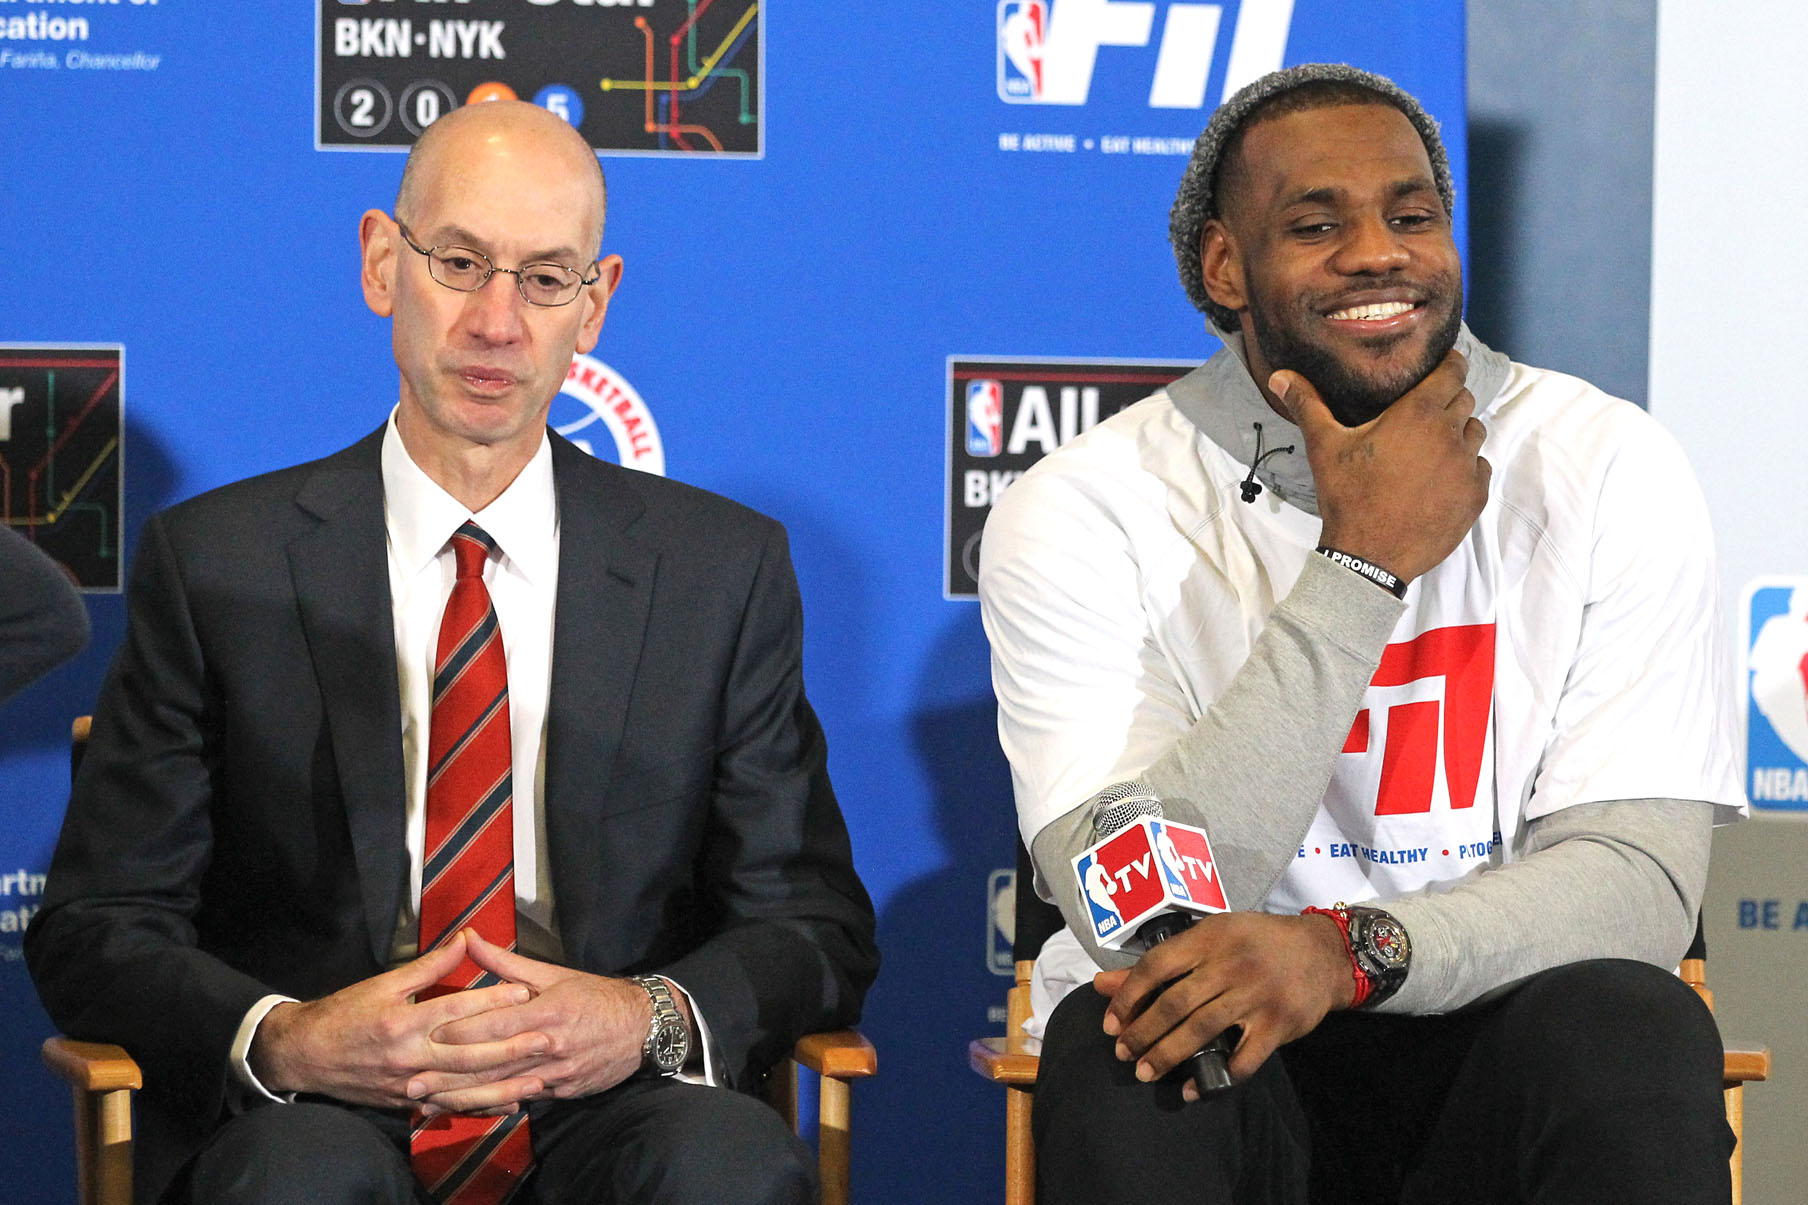 2/13/15 - LeBron James and NBA Commissioner Adam Silver at the Graphics Campus on W. 49th street, as they participated in the NBA's FIT clinic and Court dedication.